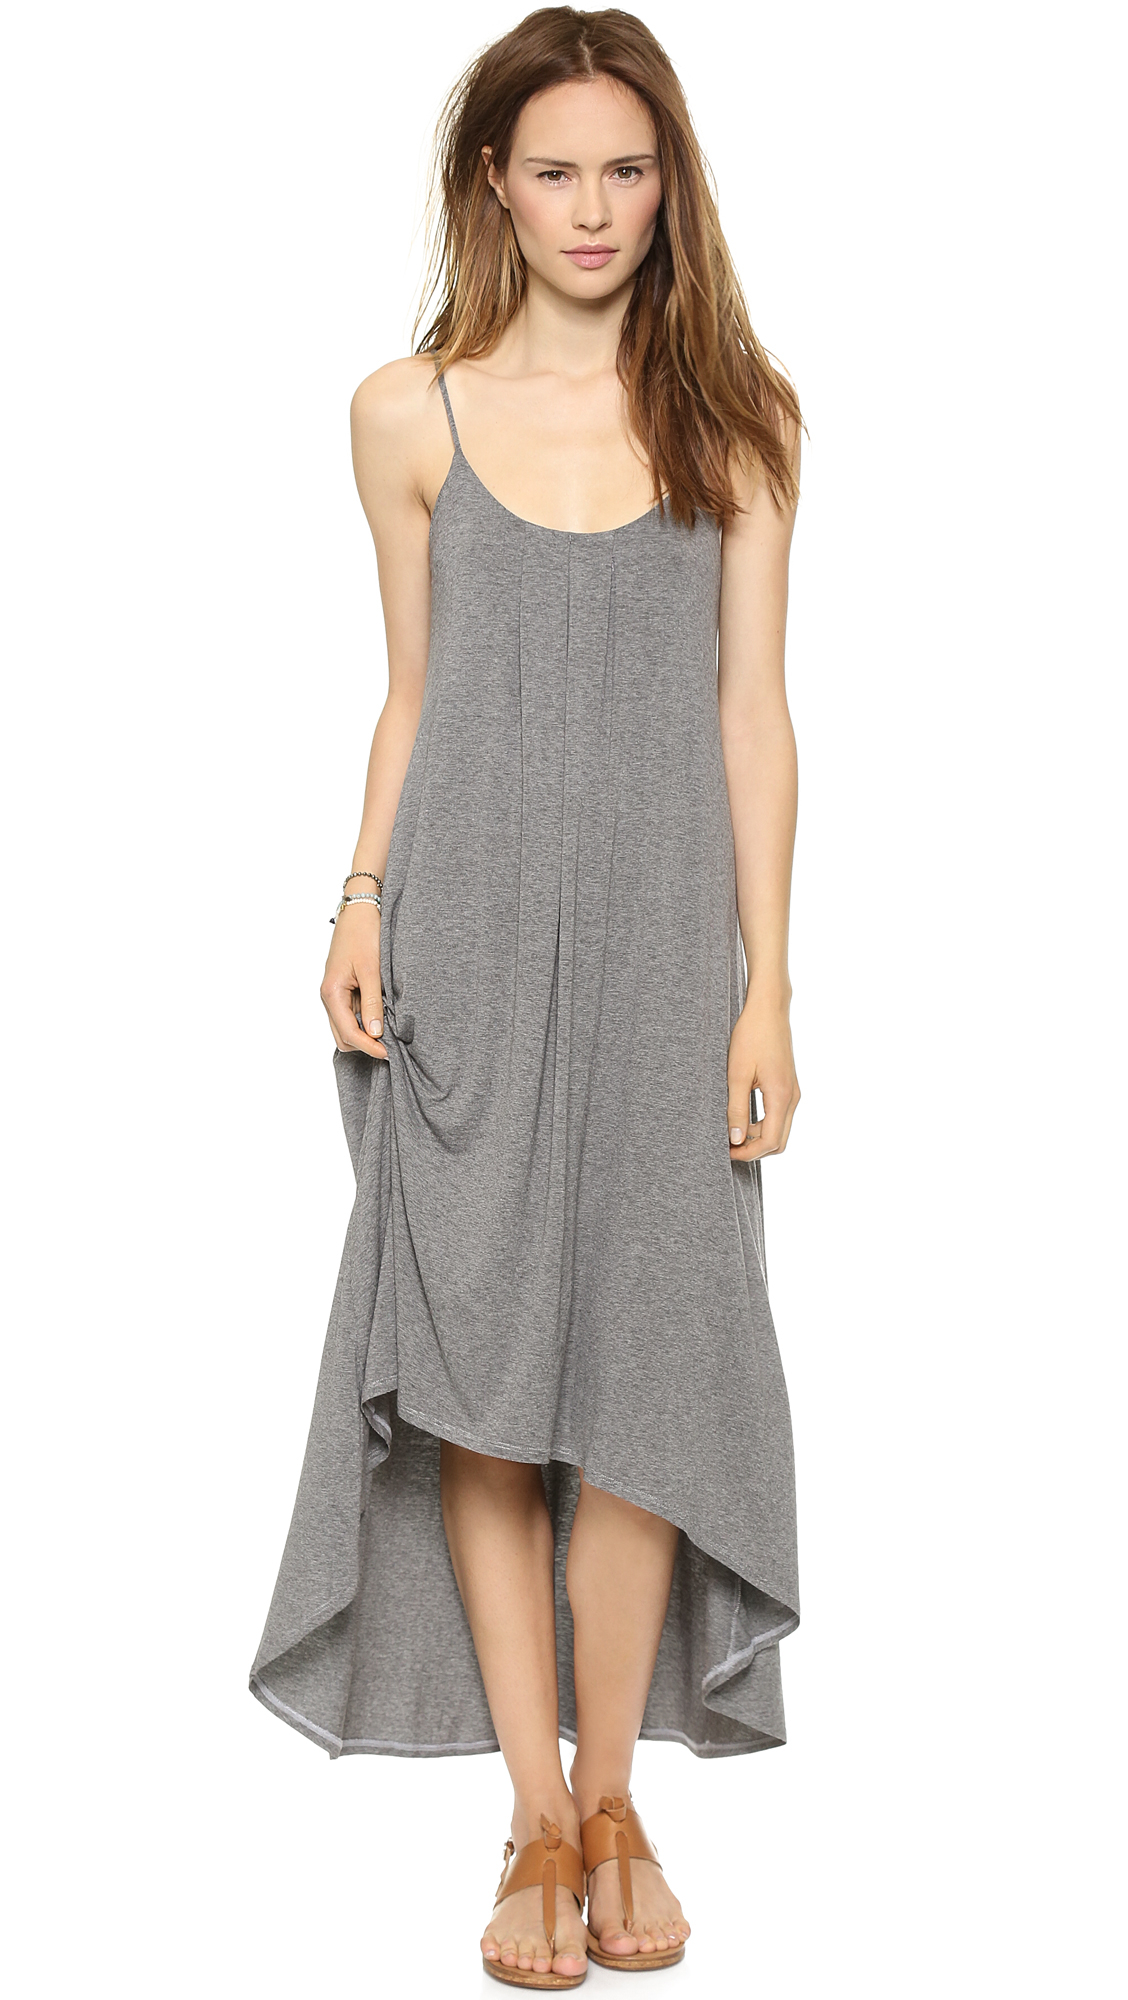 Shop for grey maxi dress online at Target. Free shipping on purchases over $35 and save 5% every day with your Target REDcard.